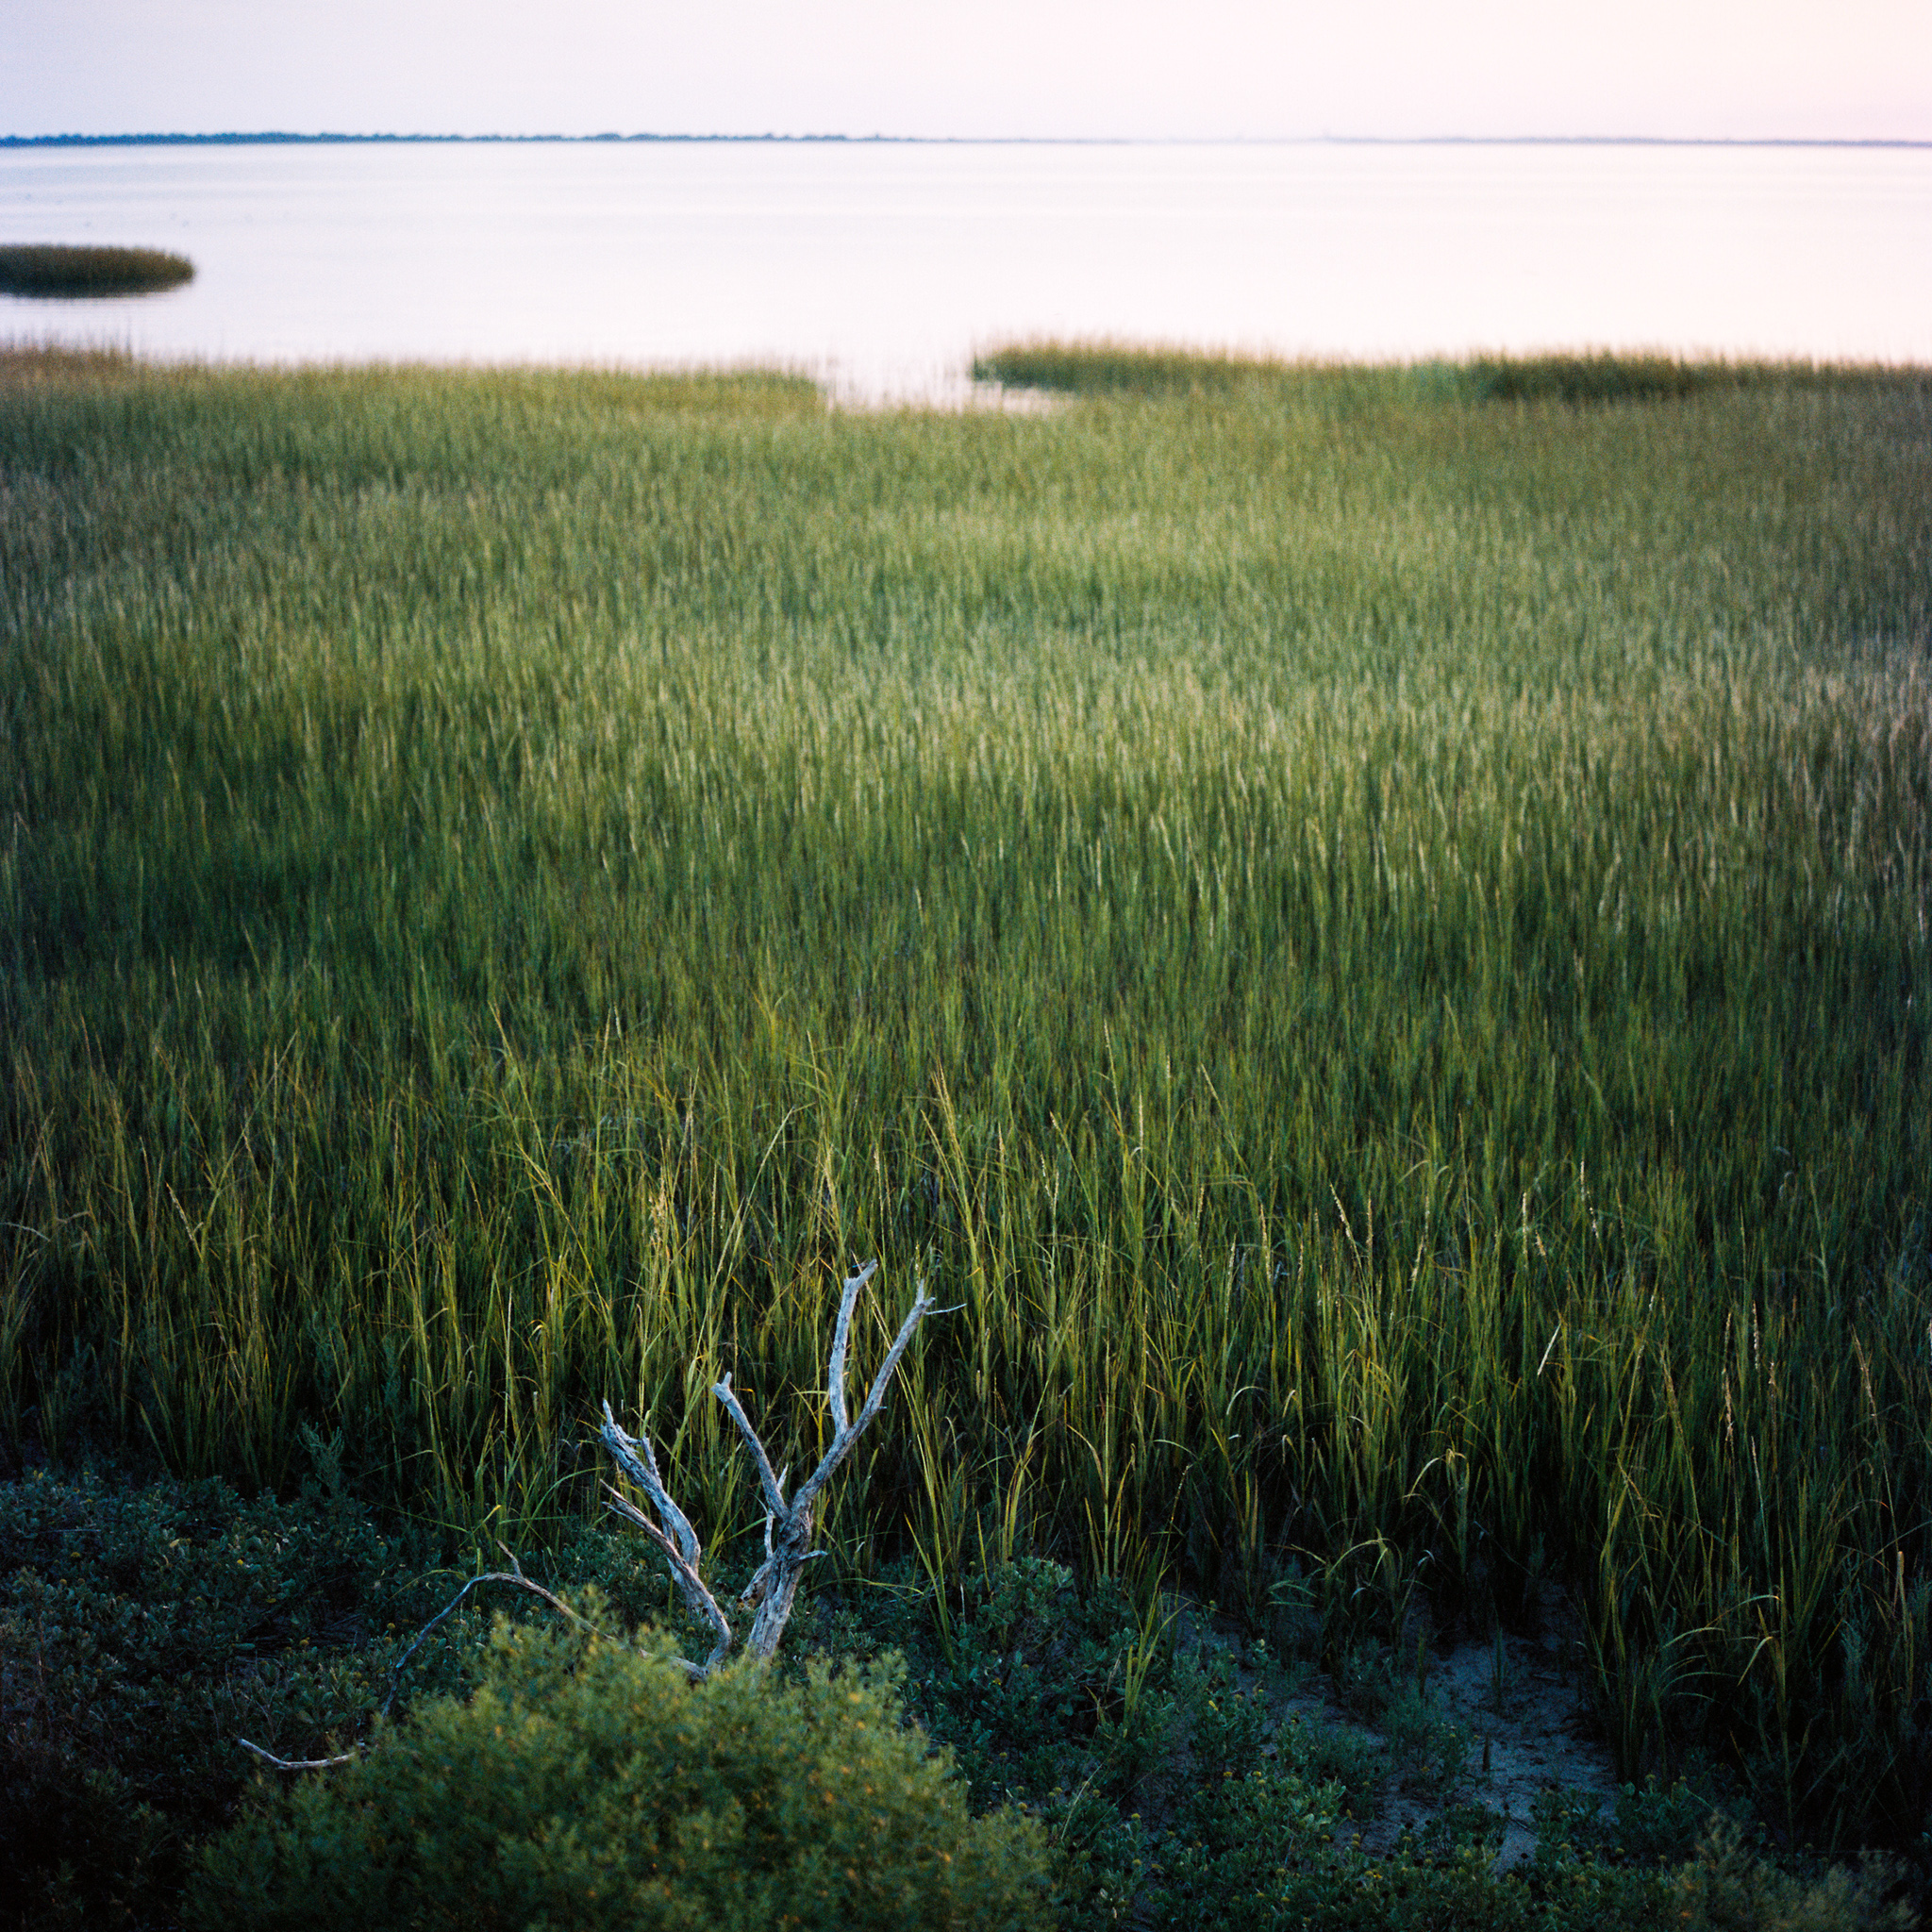 Wetland #2, Chincoteague, VA, 2016